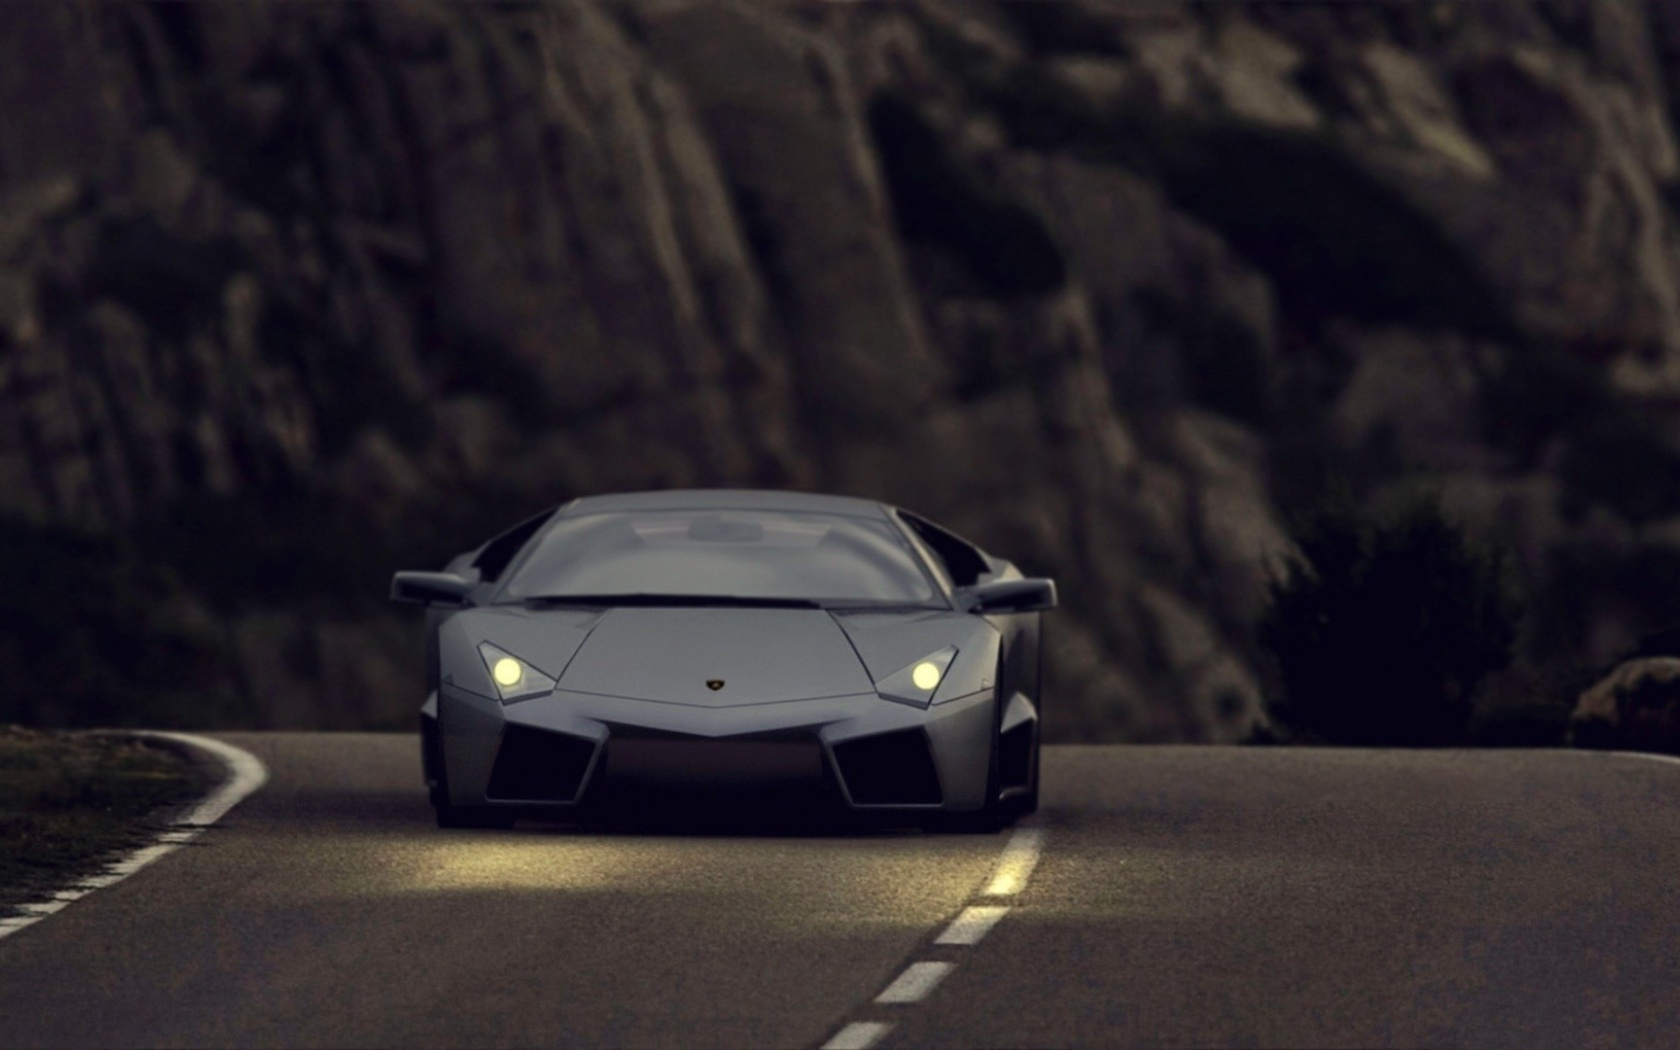 lamborghini reventon image wallpaper - photo #20